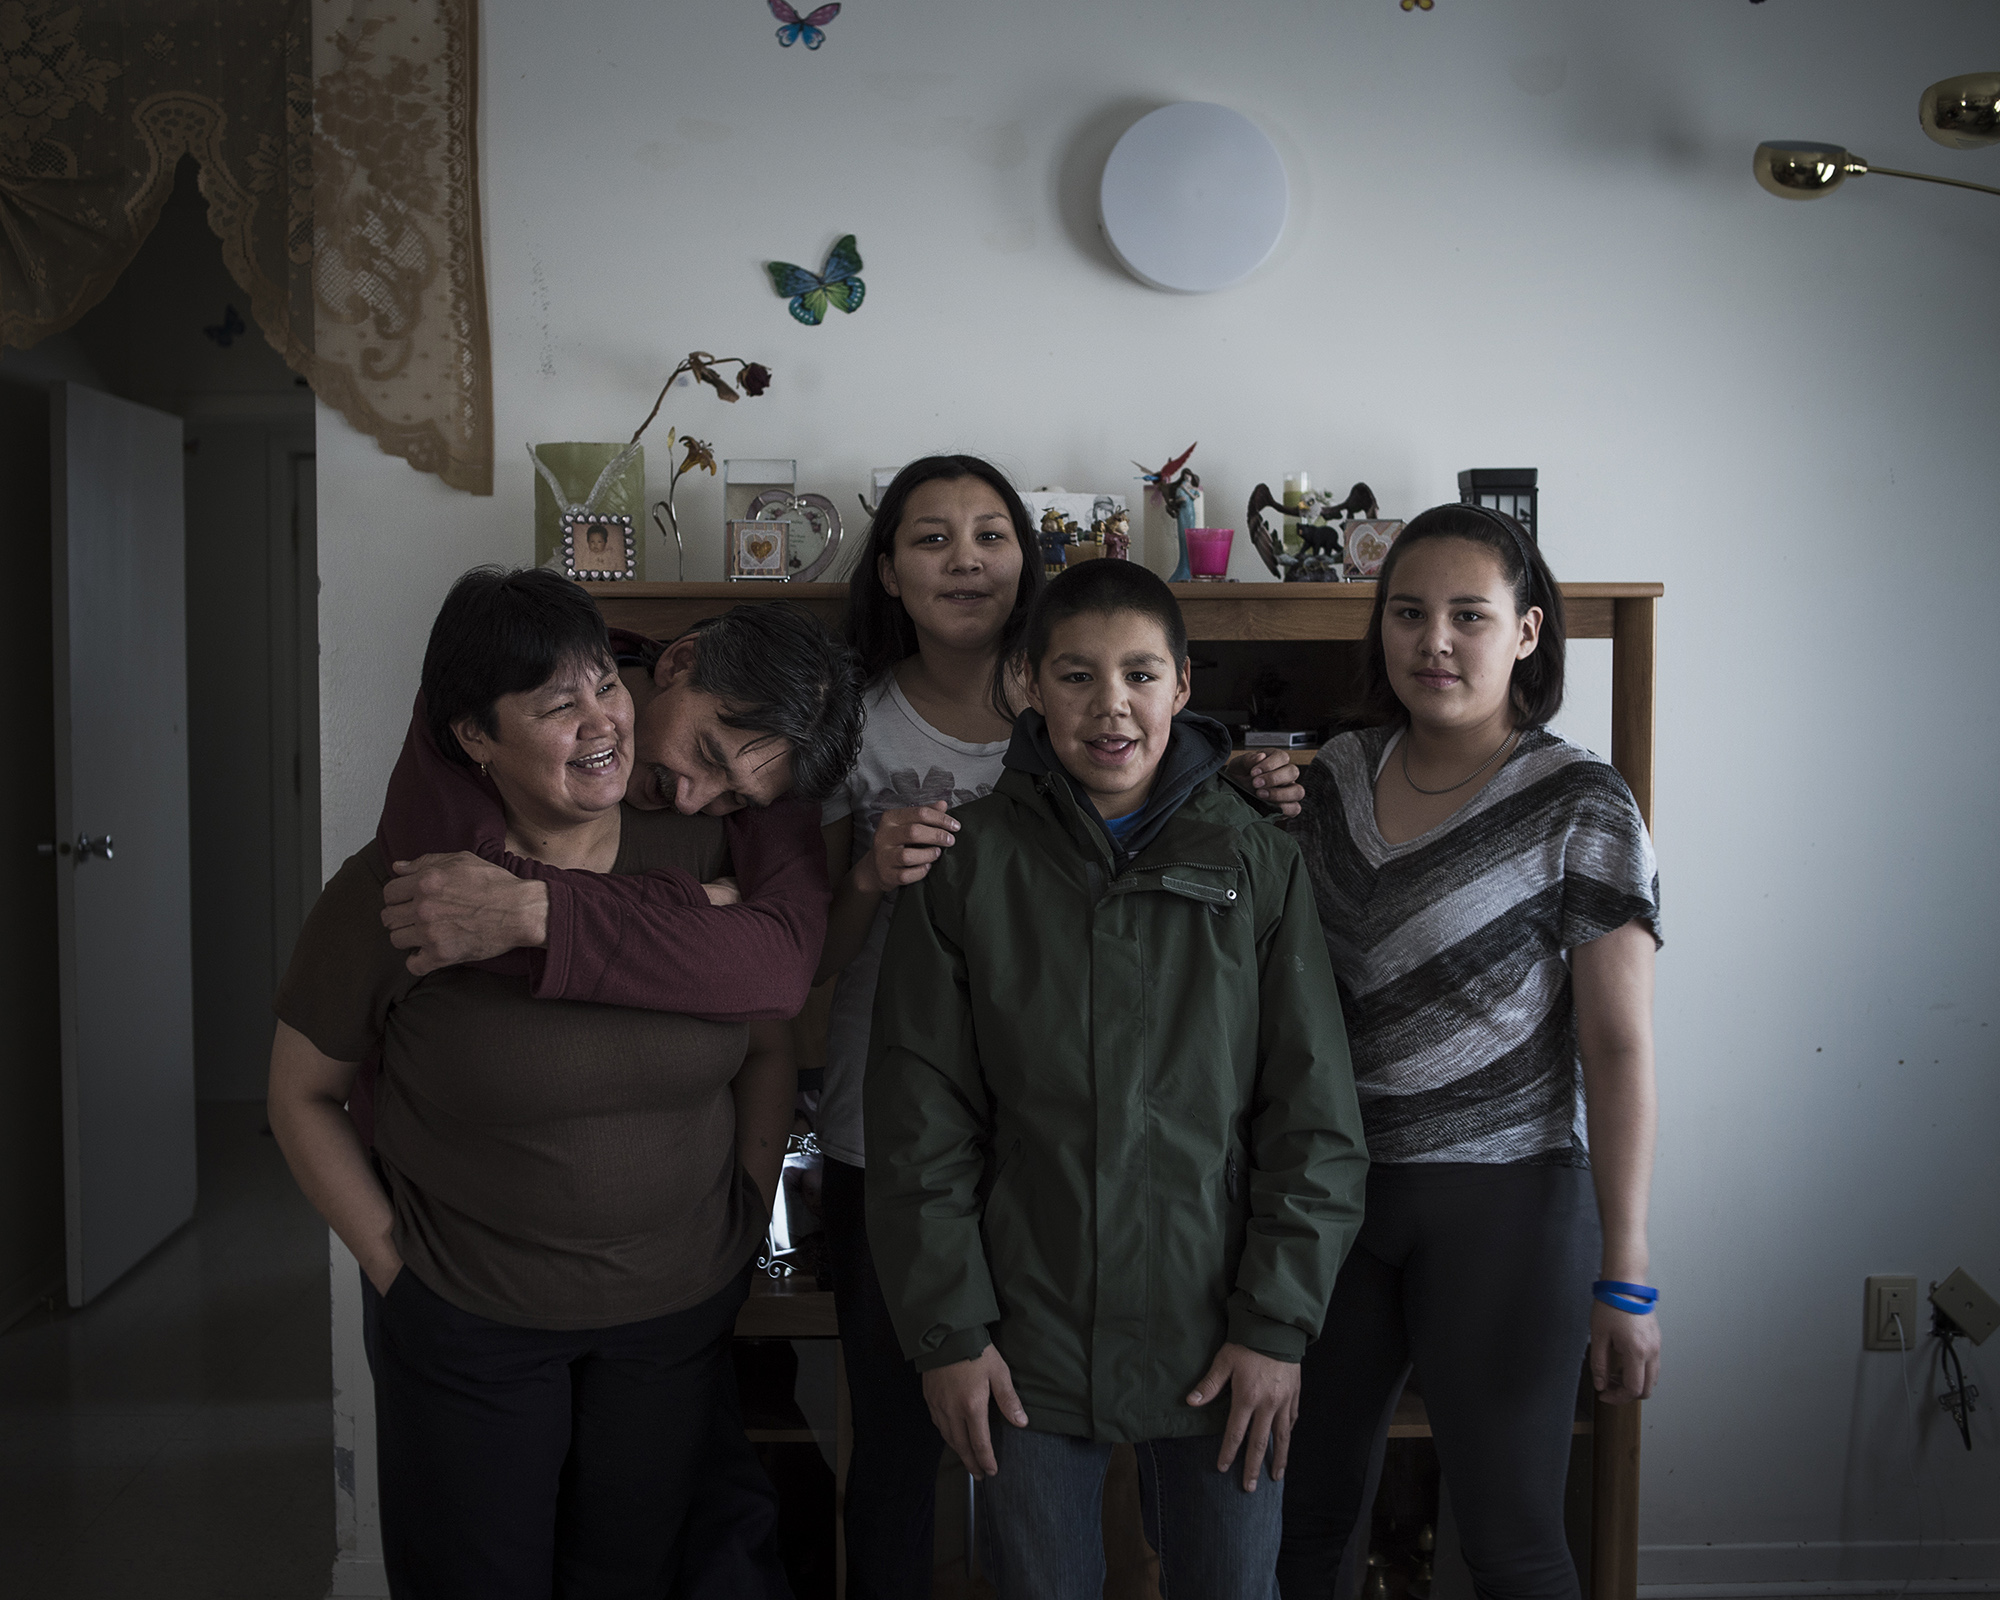 """The Natanine family. Christine Natanine (left) runs Ilisaqsivik, which offers counseling and mental health care to Inuit residents. Her husband, Jerry, (second from left) is the former mayor of Clyde River, and one of the most vocal proponents of protecting indigenous ways of life in the community. """"A lot of the problems we have would be solved if we could be on the land."""" Jerry says. (Camilla Andersen/GroundTruth)"""